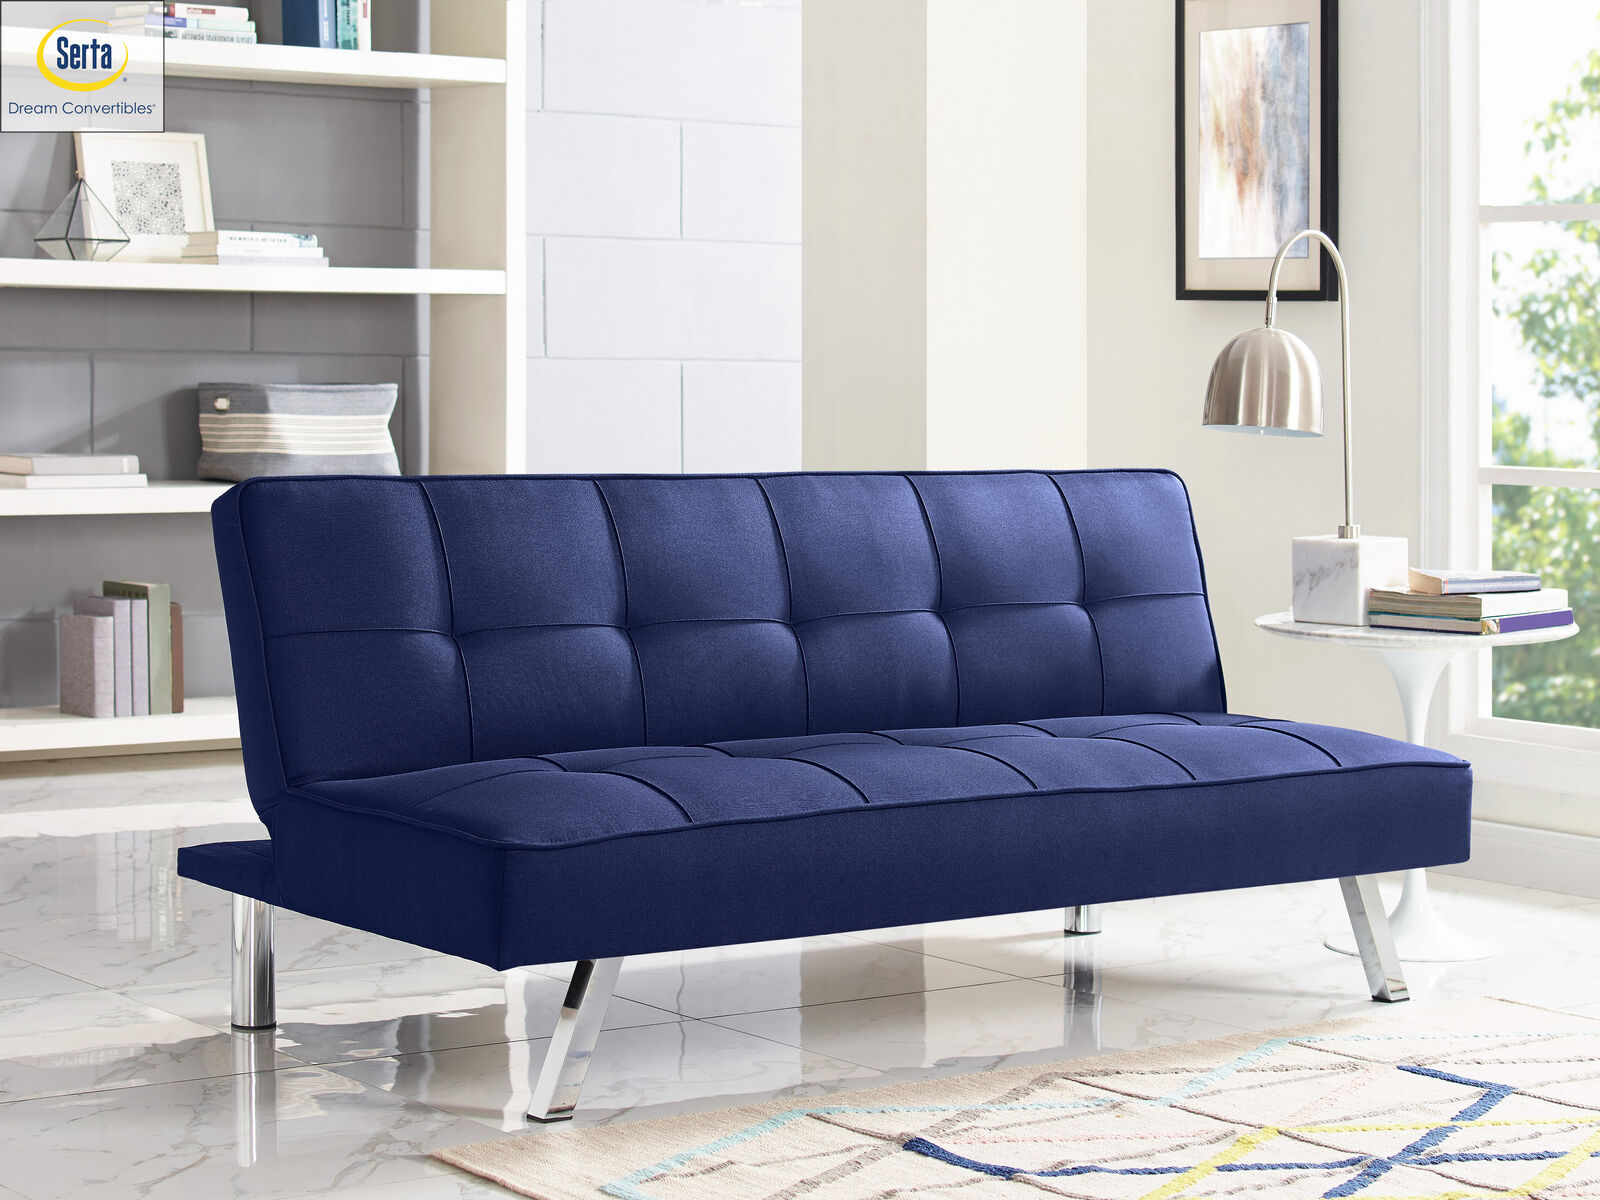 Futon Use As Sofa Bed Lounger Sleeper